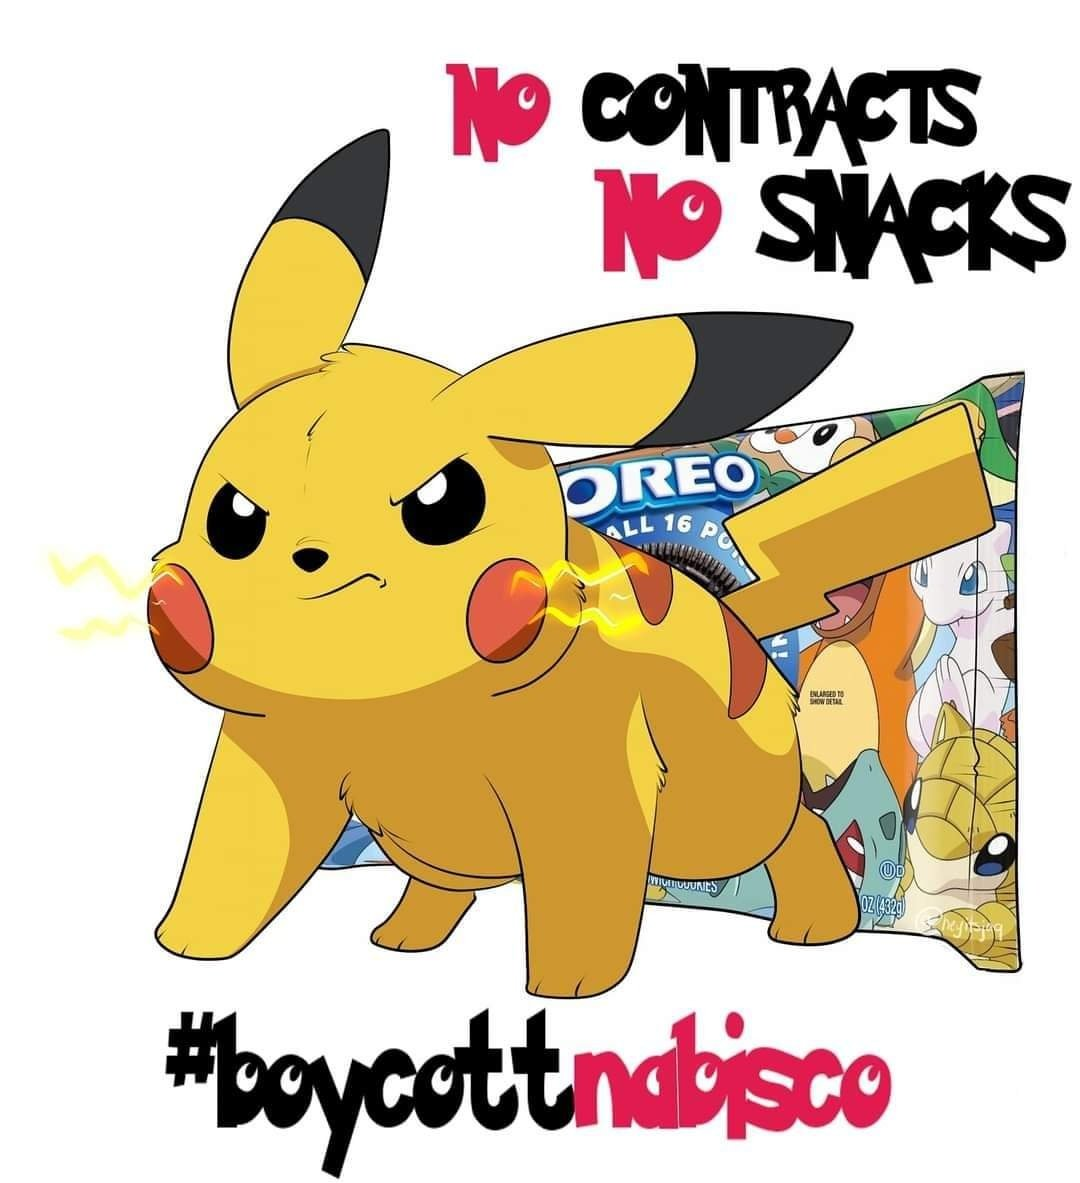 [USA]  Solidarity with our fellow workers. Fuck the scabs. #BoycottNabisco